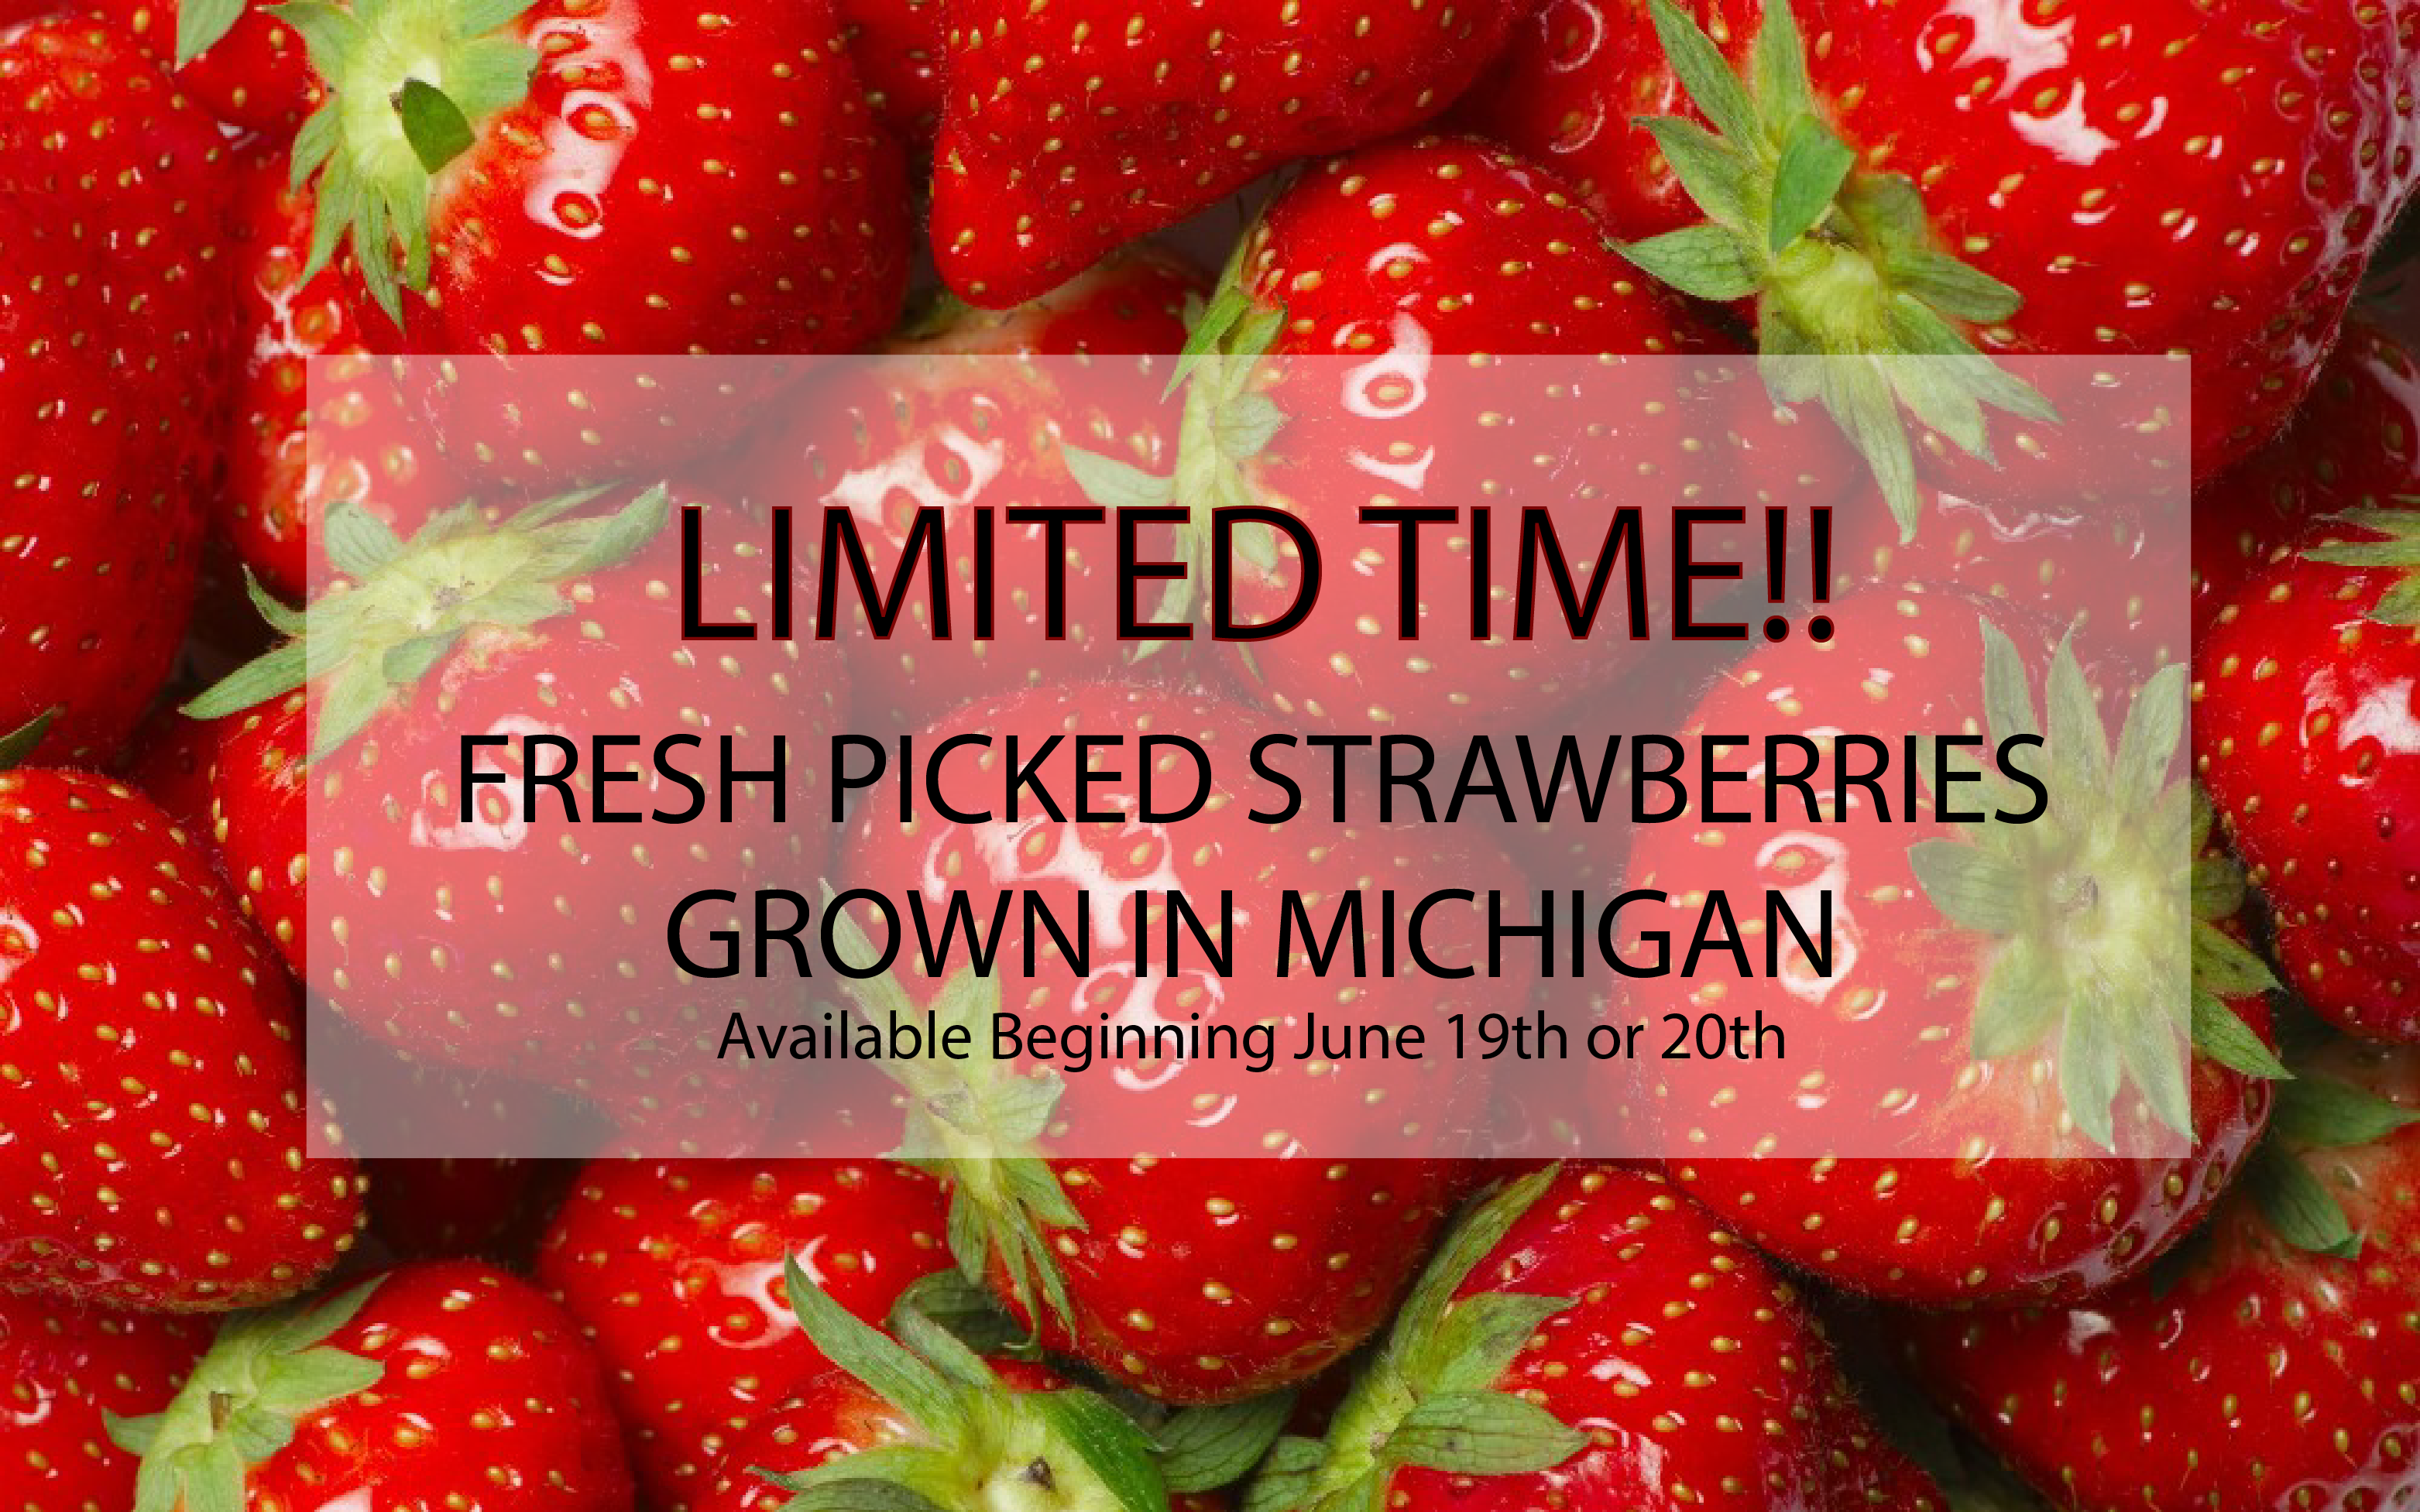 Fresh Picked Strawberries at Tip'n the Mitten – Limited Time Only!